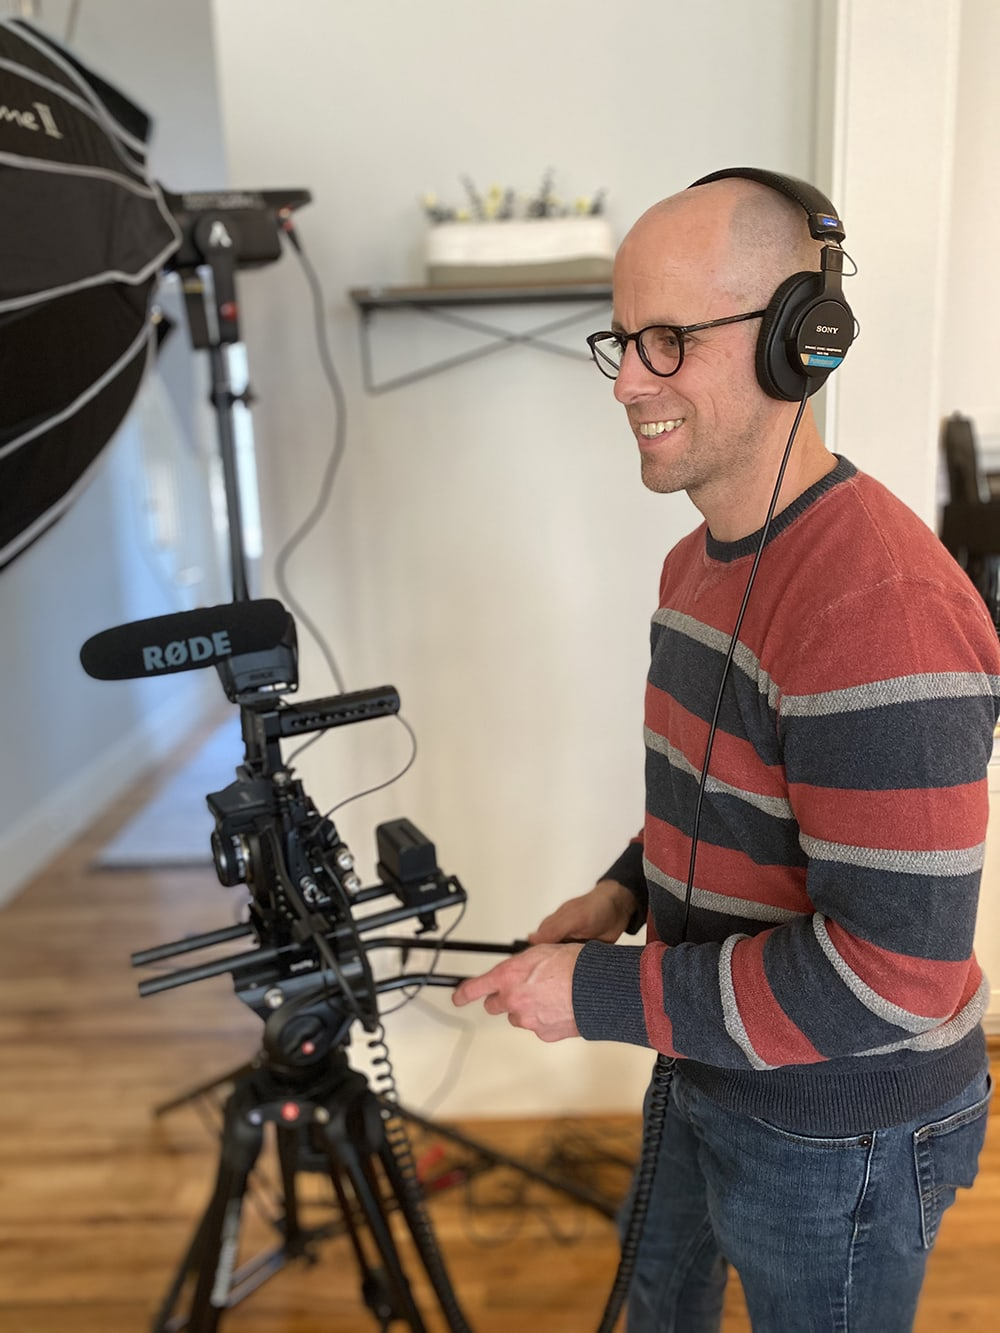 Jason, filming and wearing a pair of headphones